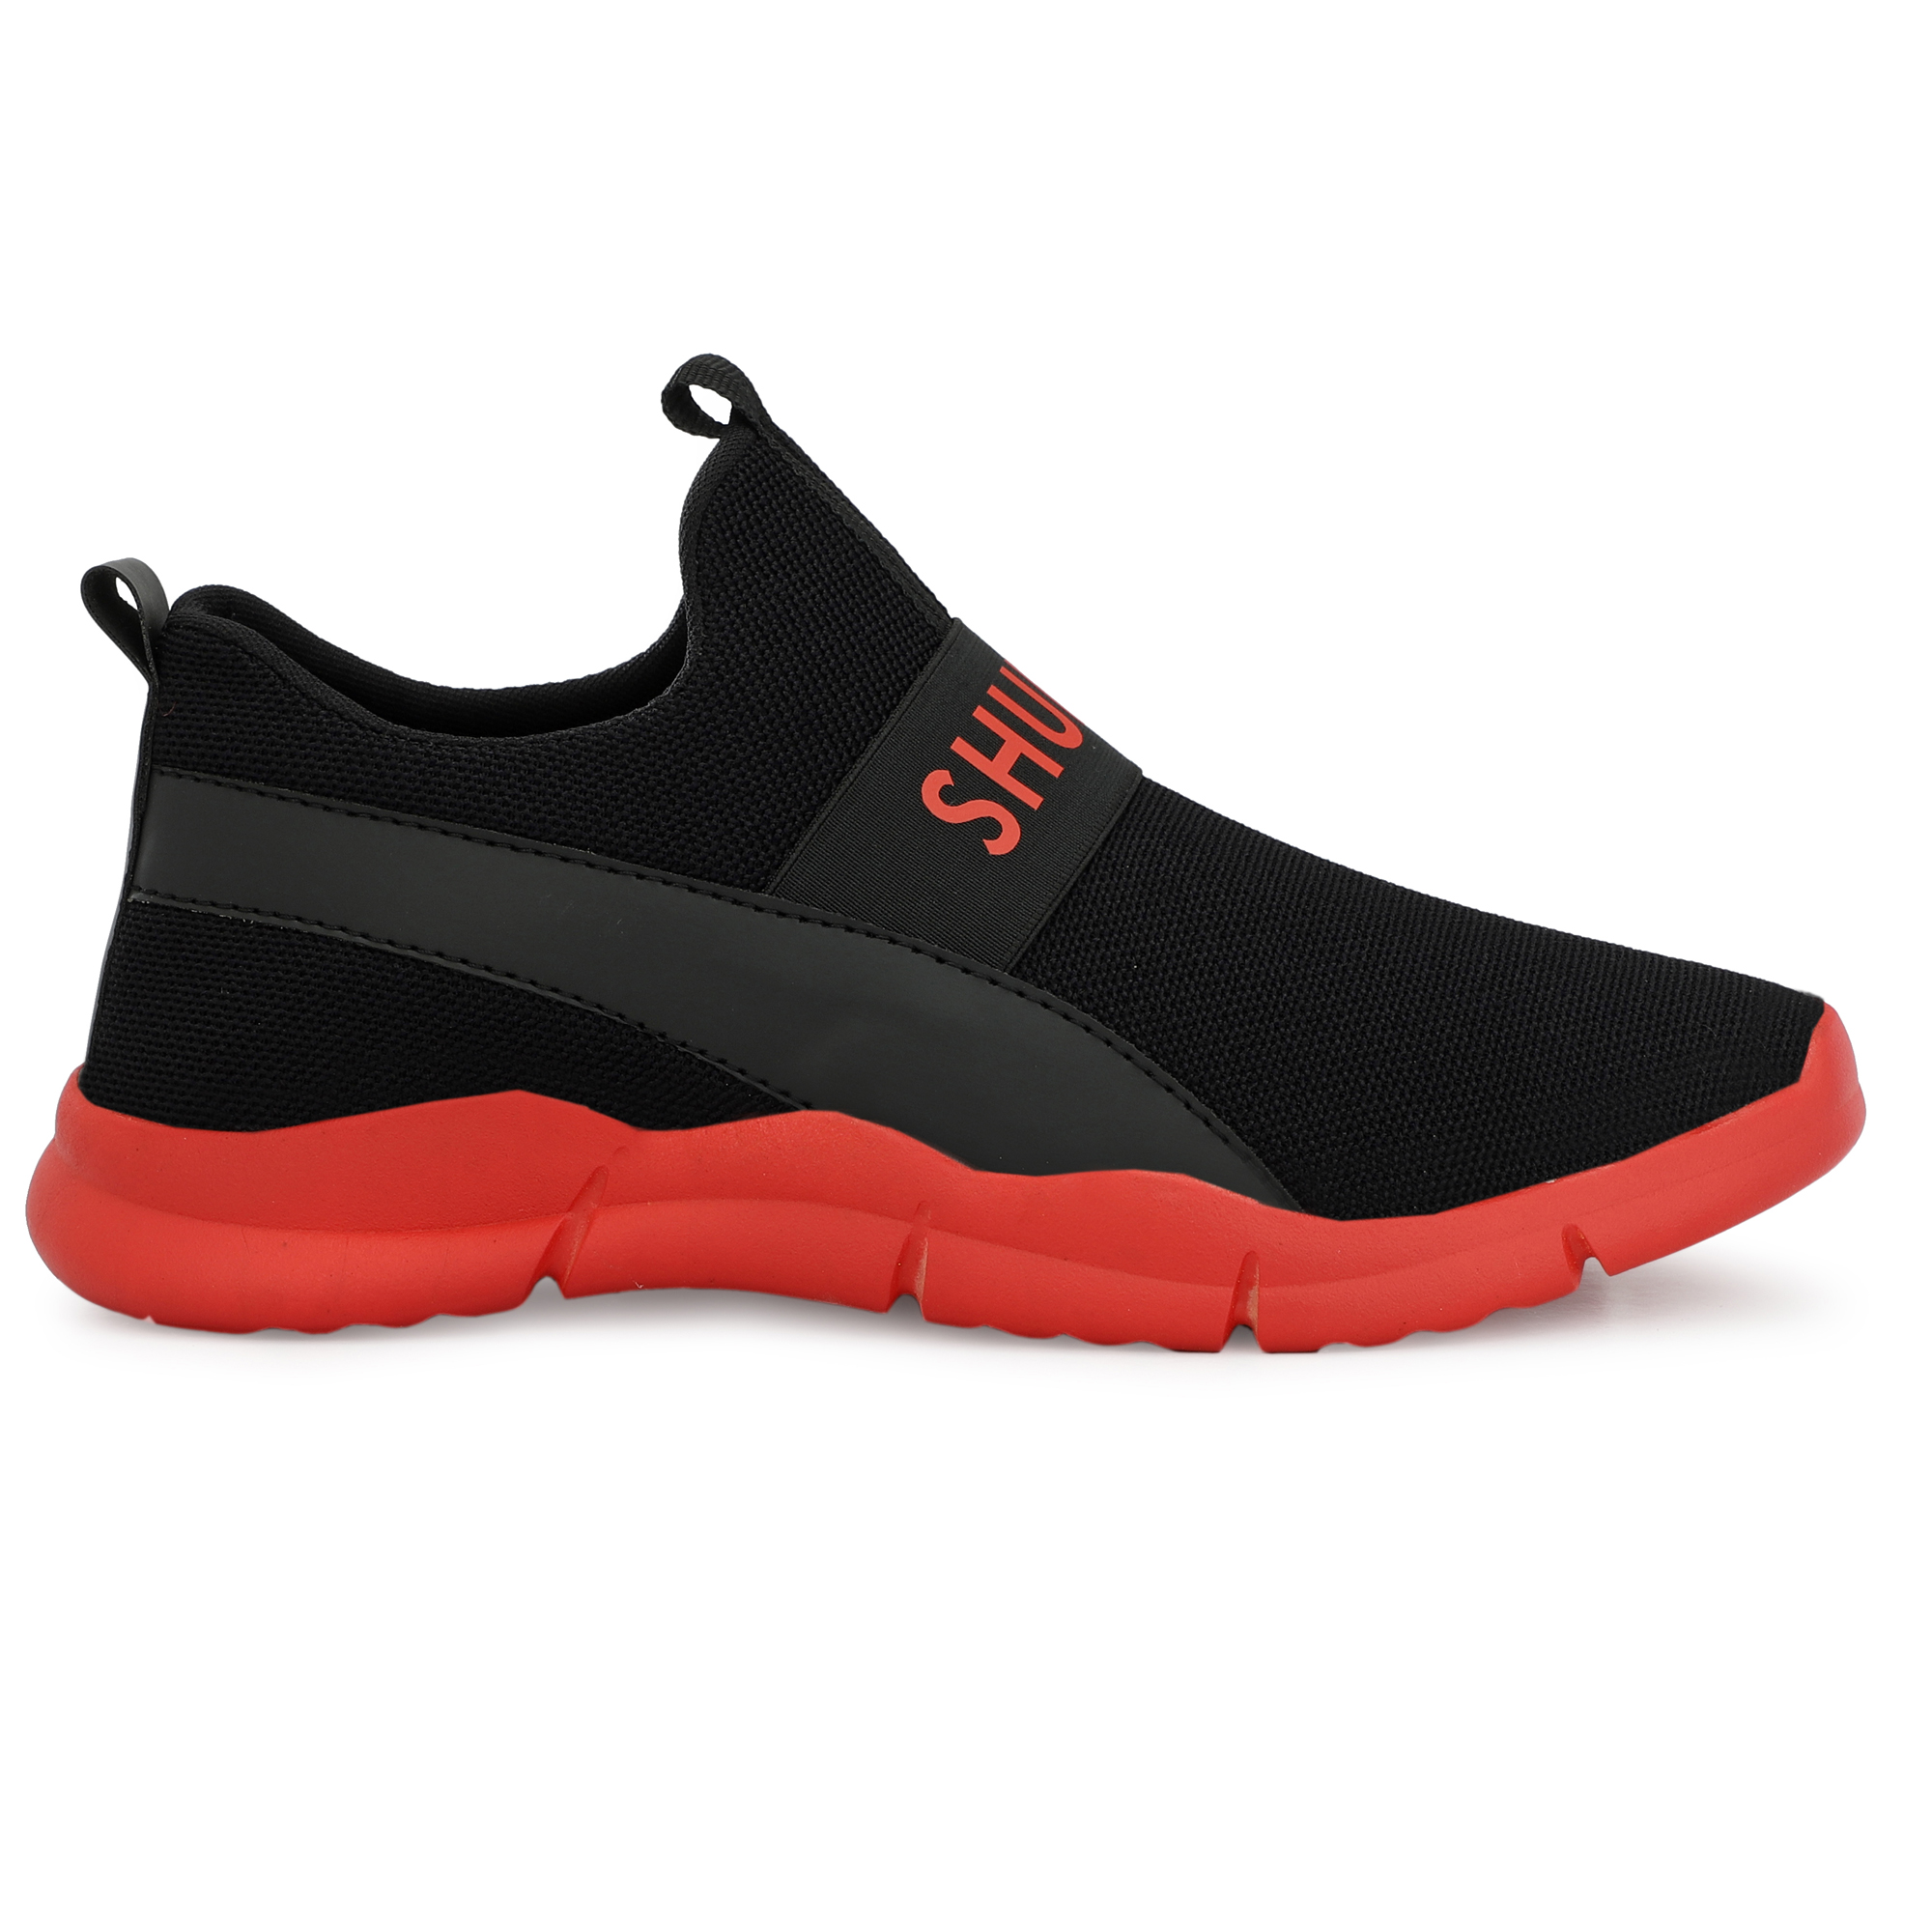 SURAB Present Premium Quality Men's Sports Shoes MSG_055_Red (Red, 6-10, 8 PAIR)